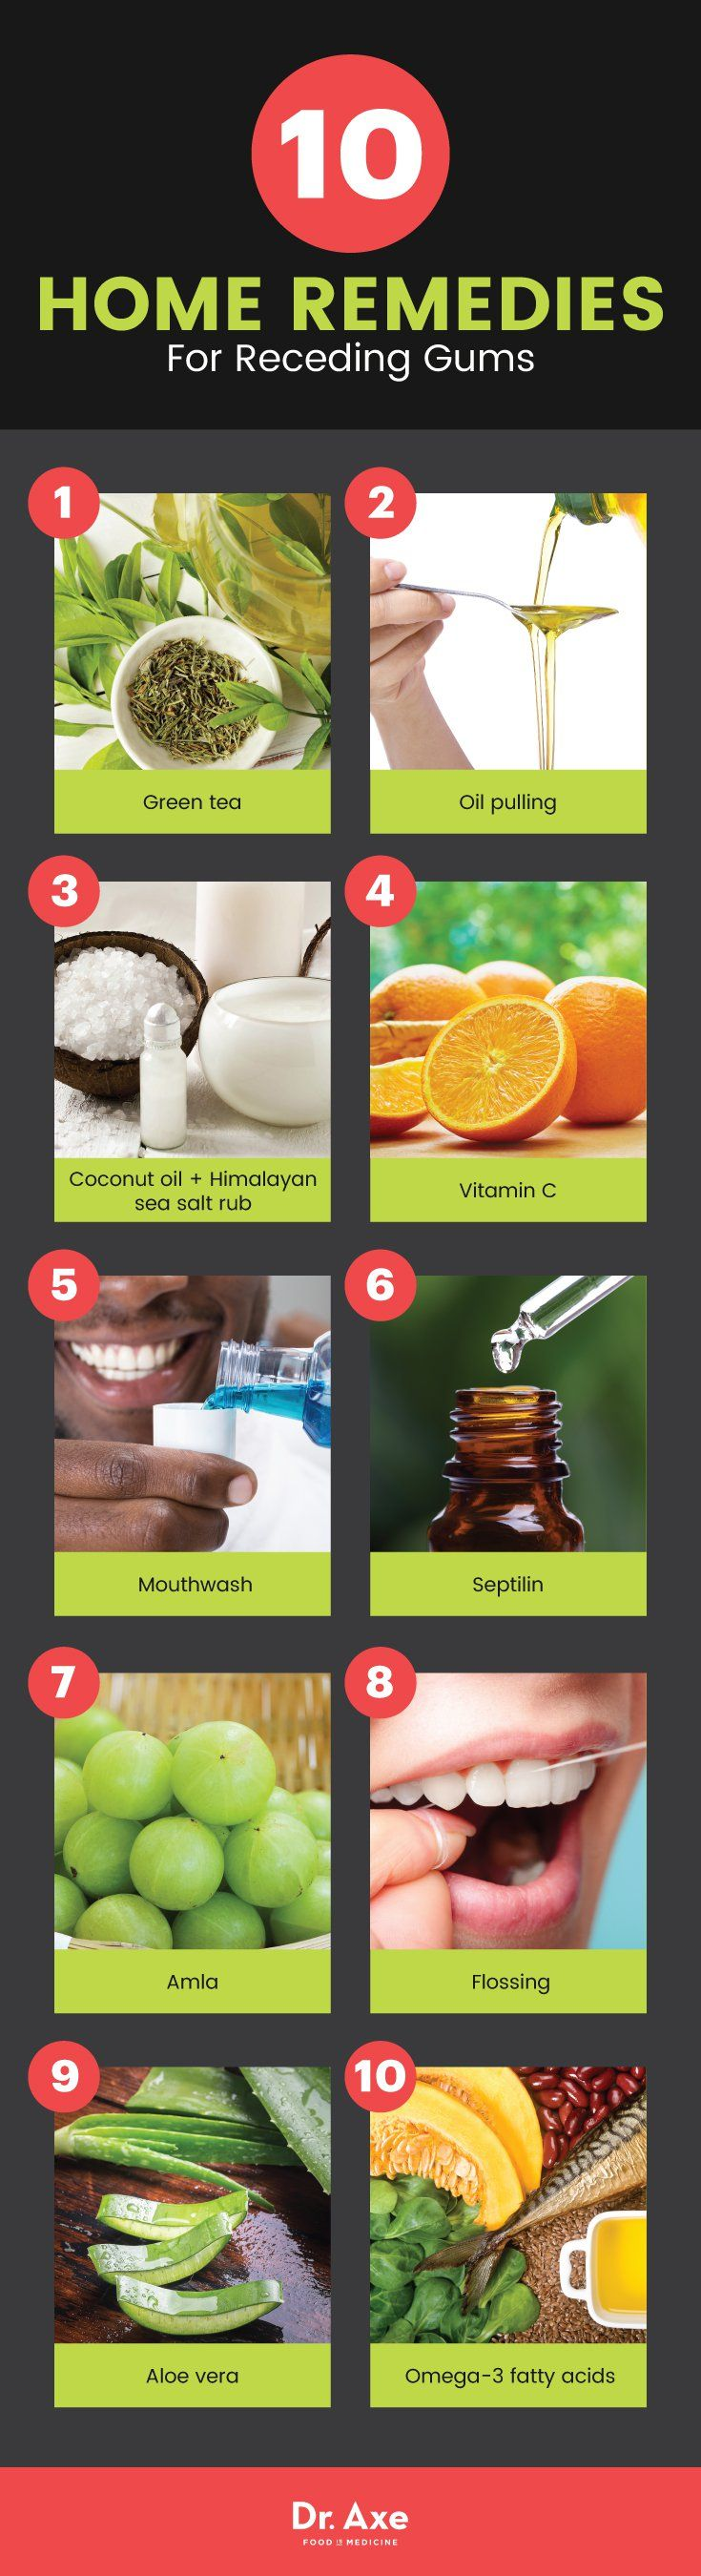 10 receding gums home remedies - Dr. Axe http://www.draxe.com #health #holistic #natural #diy